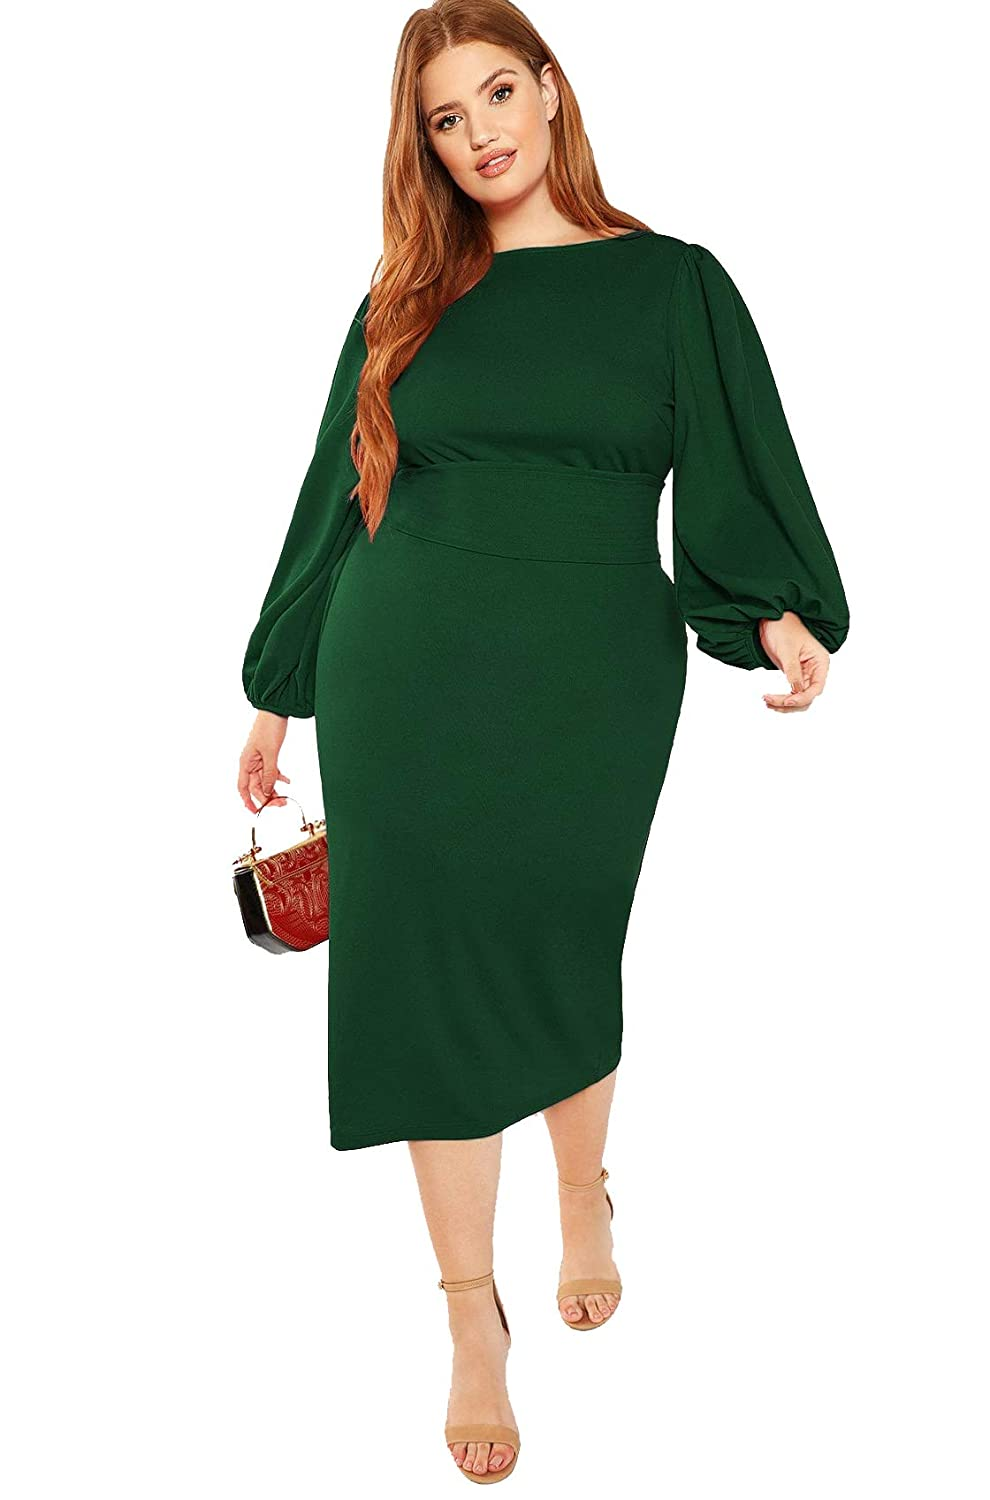 60s 70s Plus Size Dresses, Clothing, Costumes Milumia Womens Plus Size Round Neck Long Lantern Sleeve Belted Pencil Dress $39.88 AT vintagedancer.com